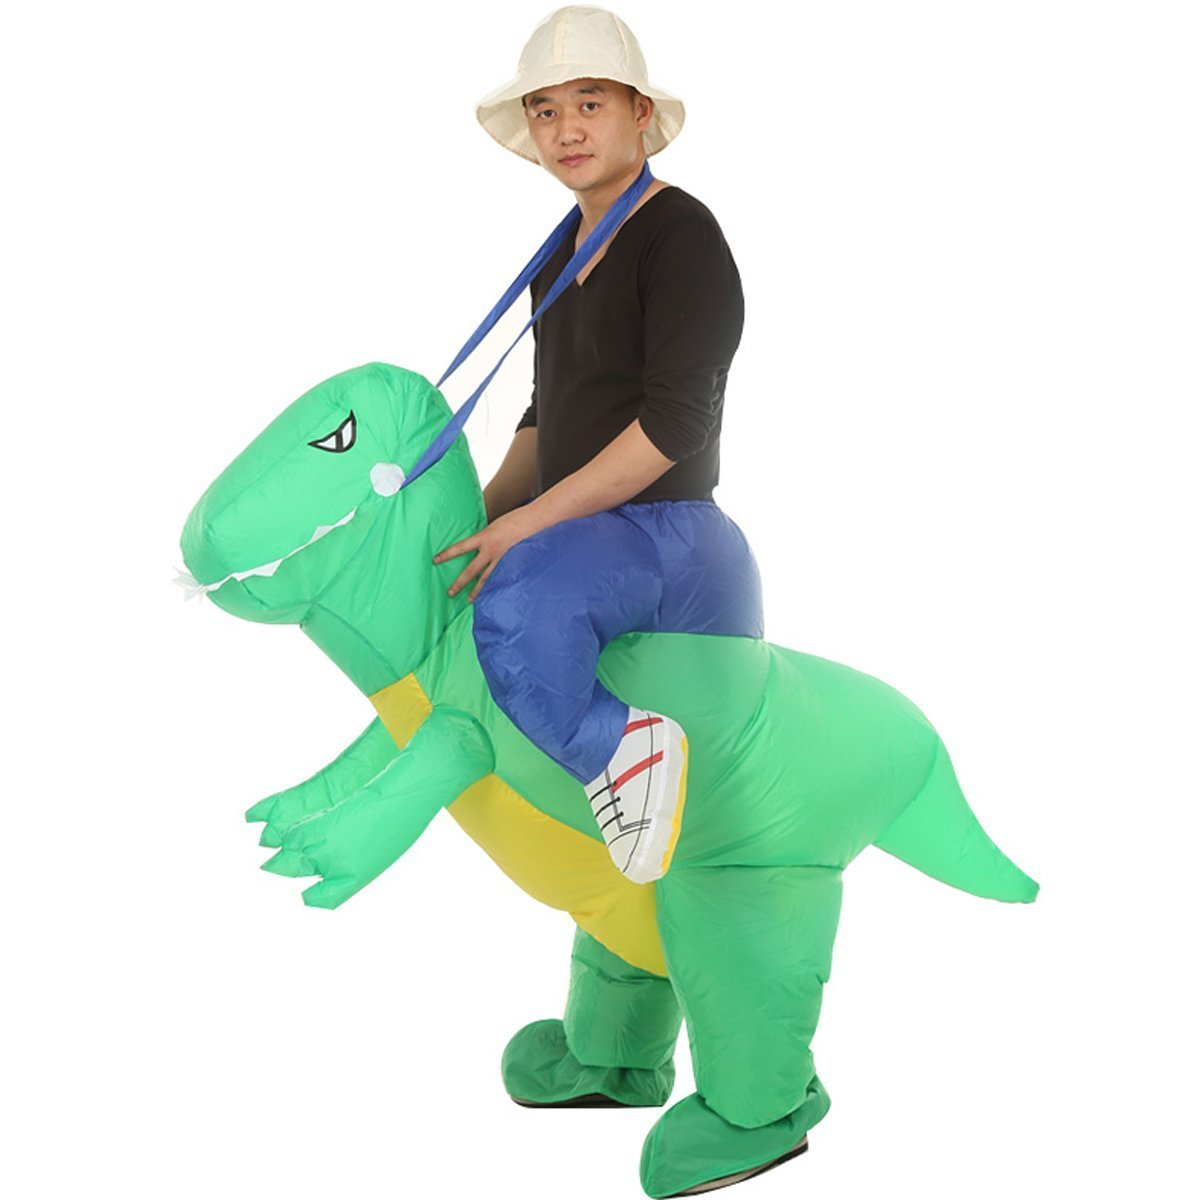 Qshine Inflatable Rider Costume Riding Me Fancy Dress Funny Dinosaur Dragon Funny Suit Mount Kids Adult (Child, Green)